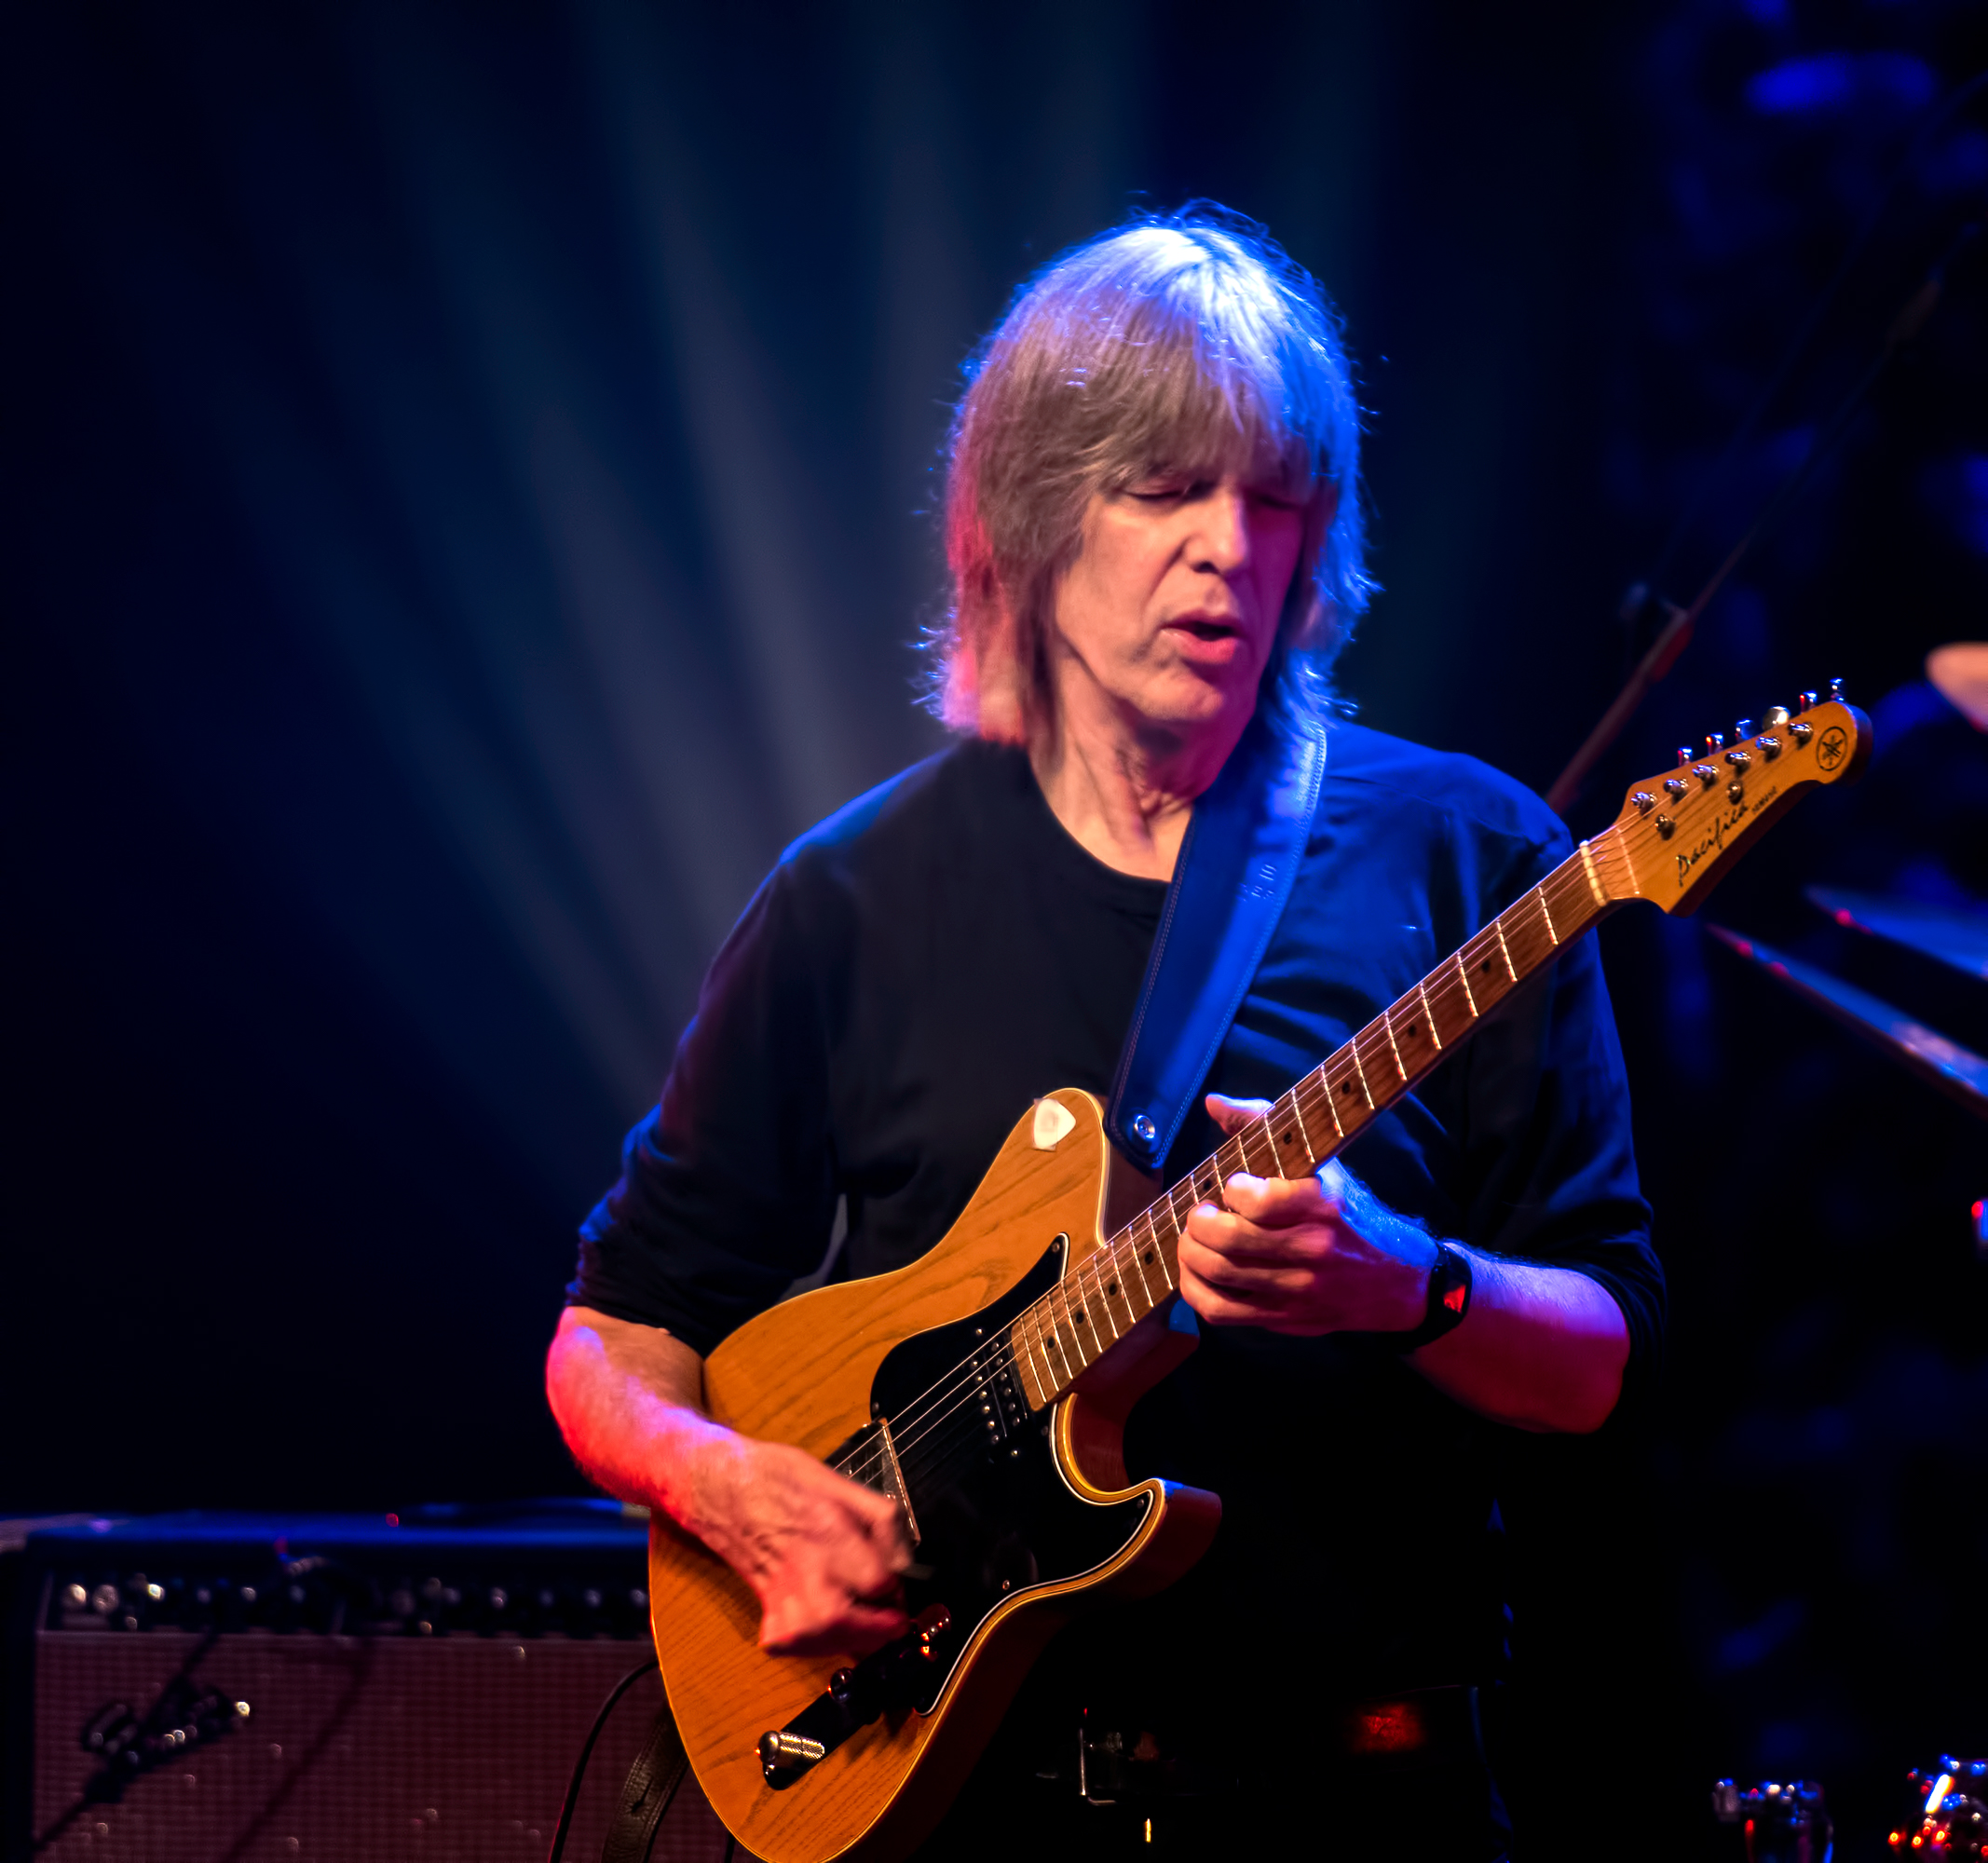 Mike Stern With The Stern/Brecker Band At The Montreal International Jazz Festival 2018